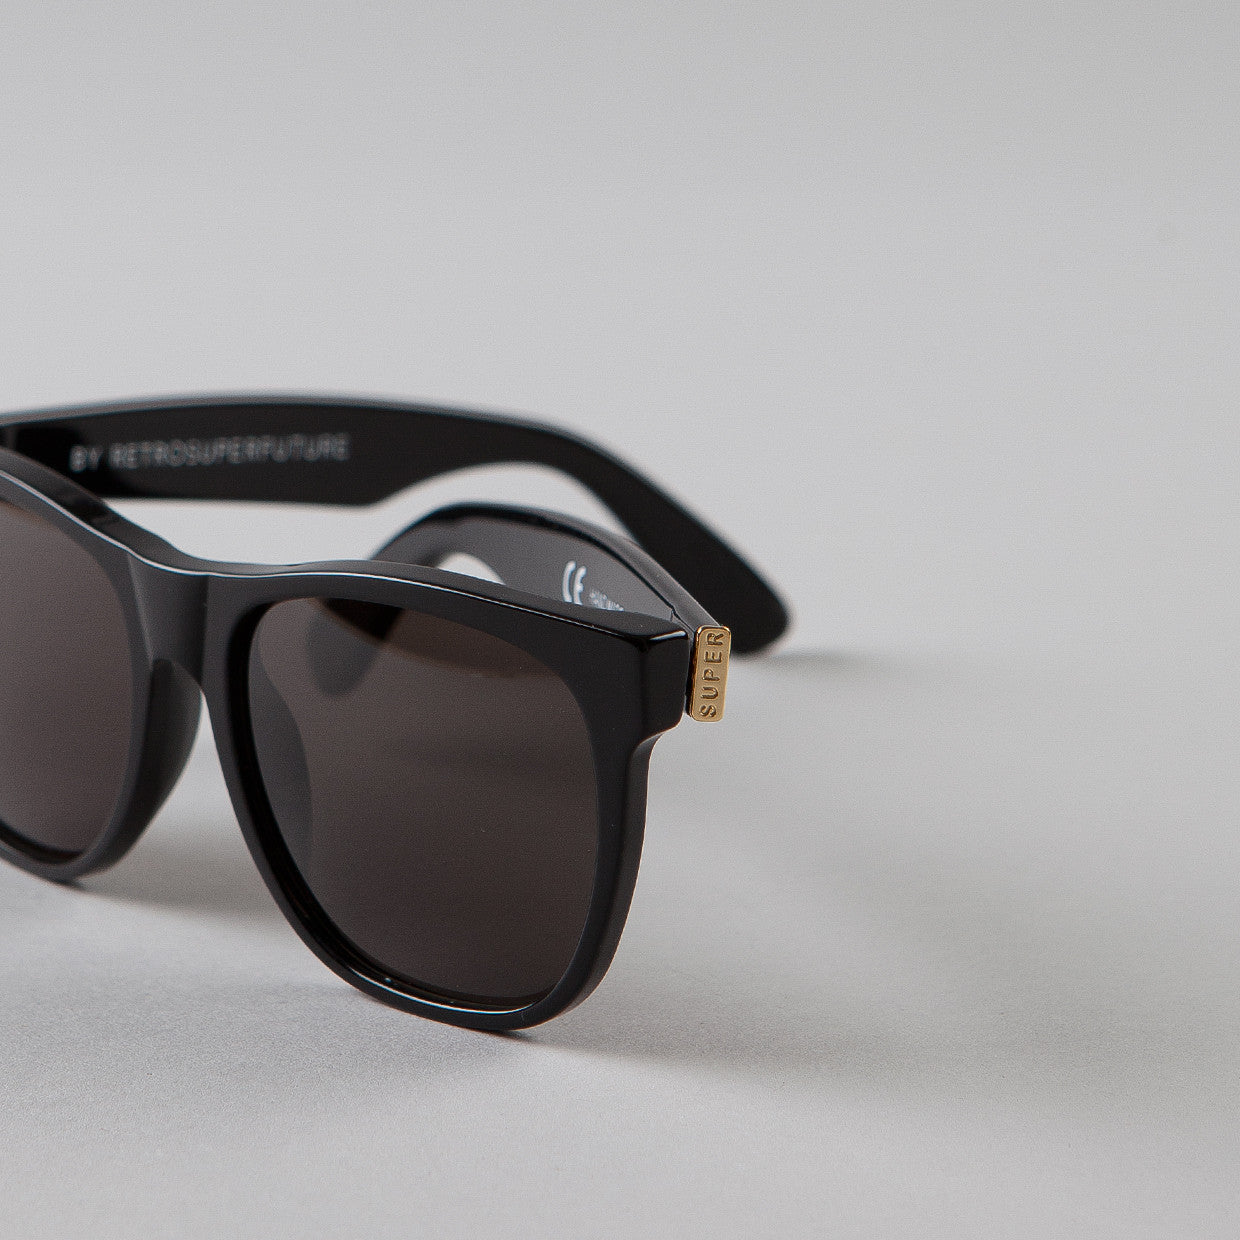 Super Classic Sunglasses Black